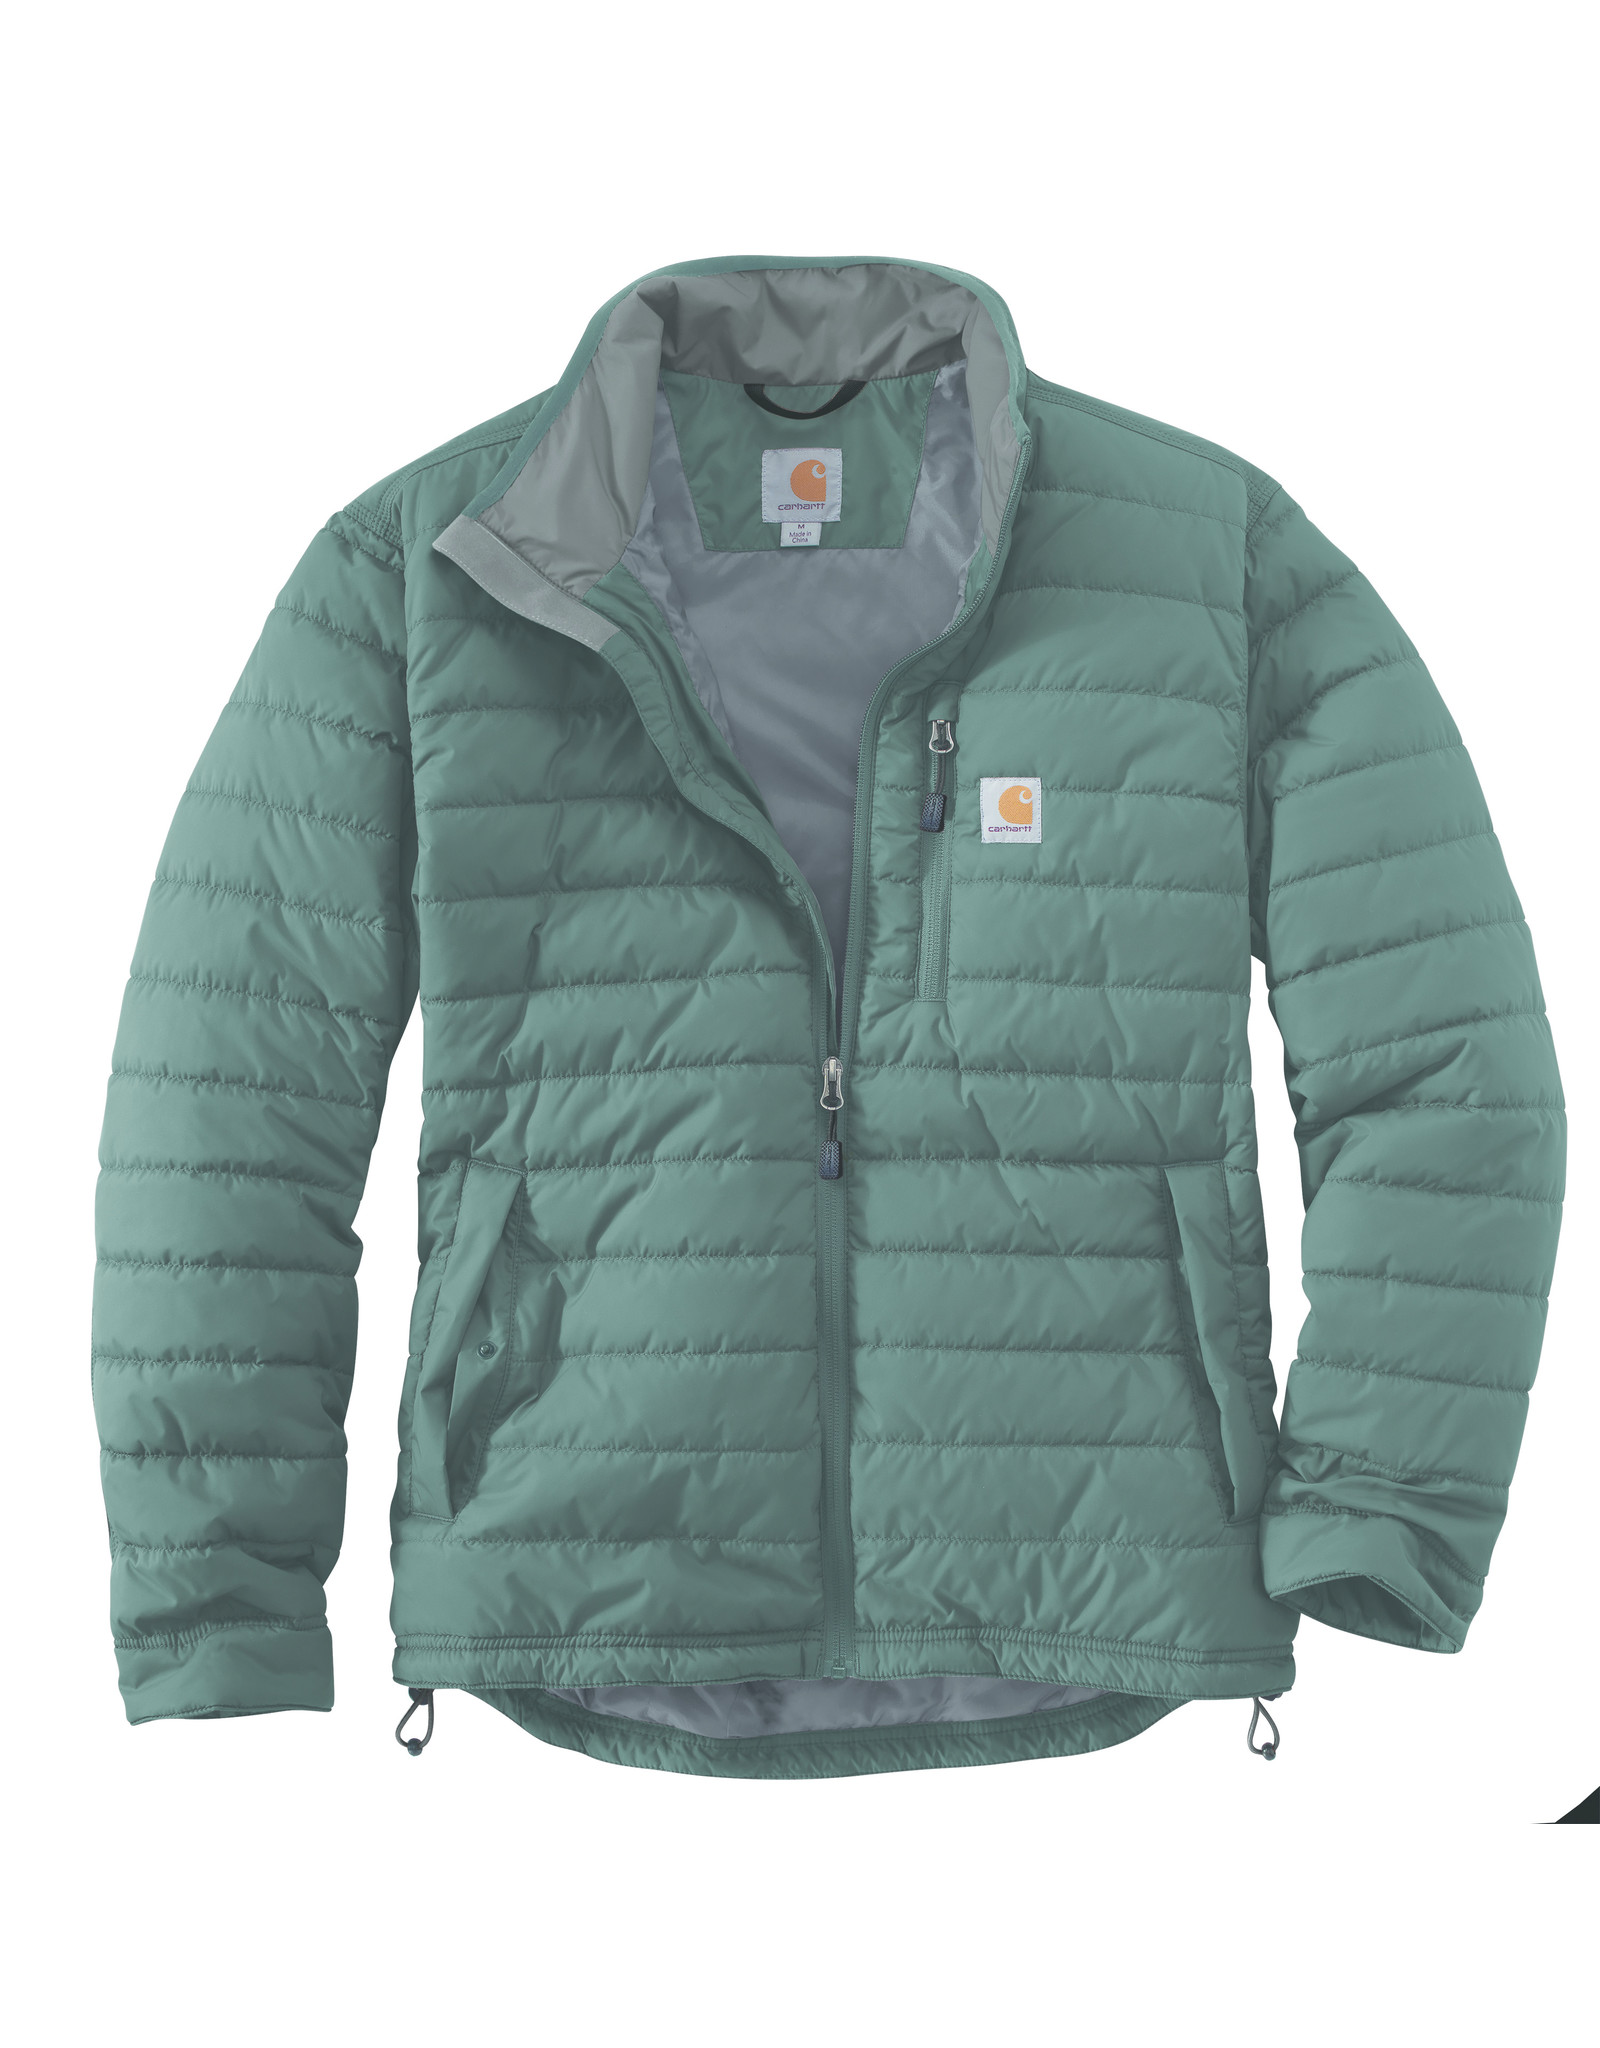 Carhartt Carhartt Gilliam Jacket